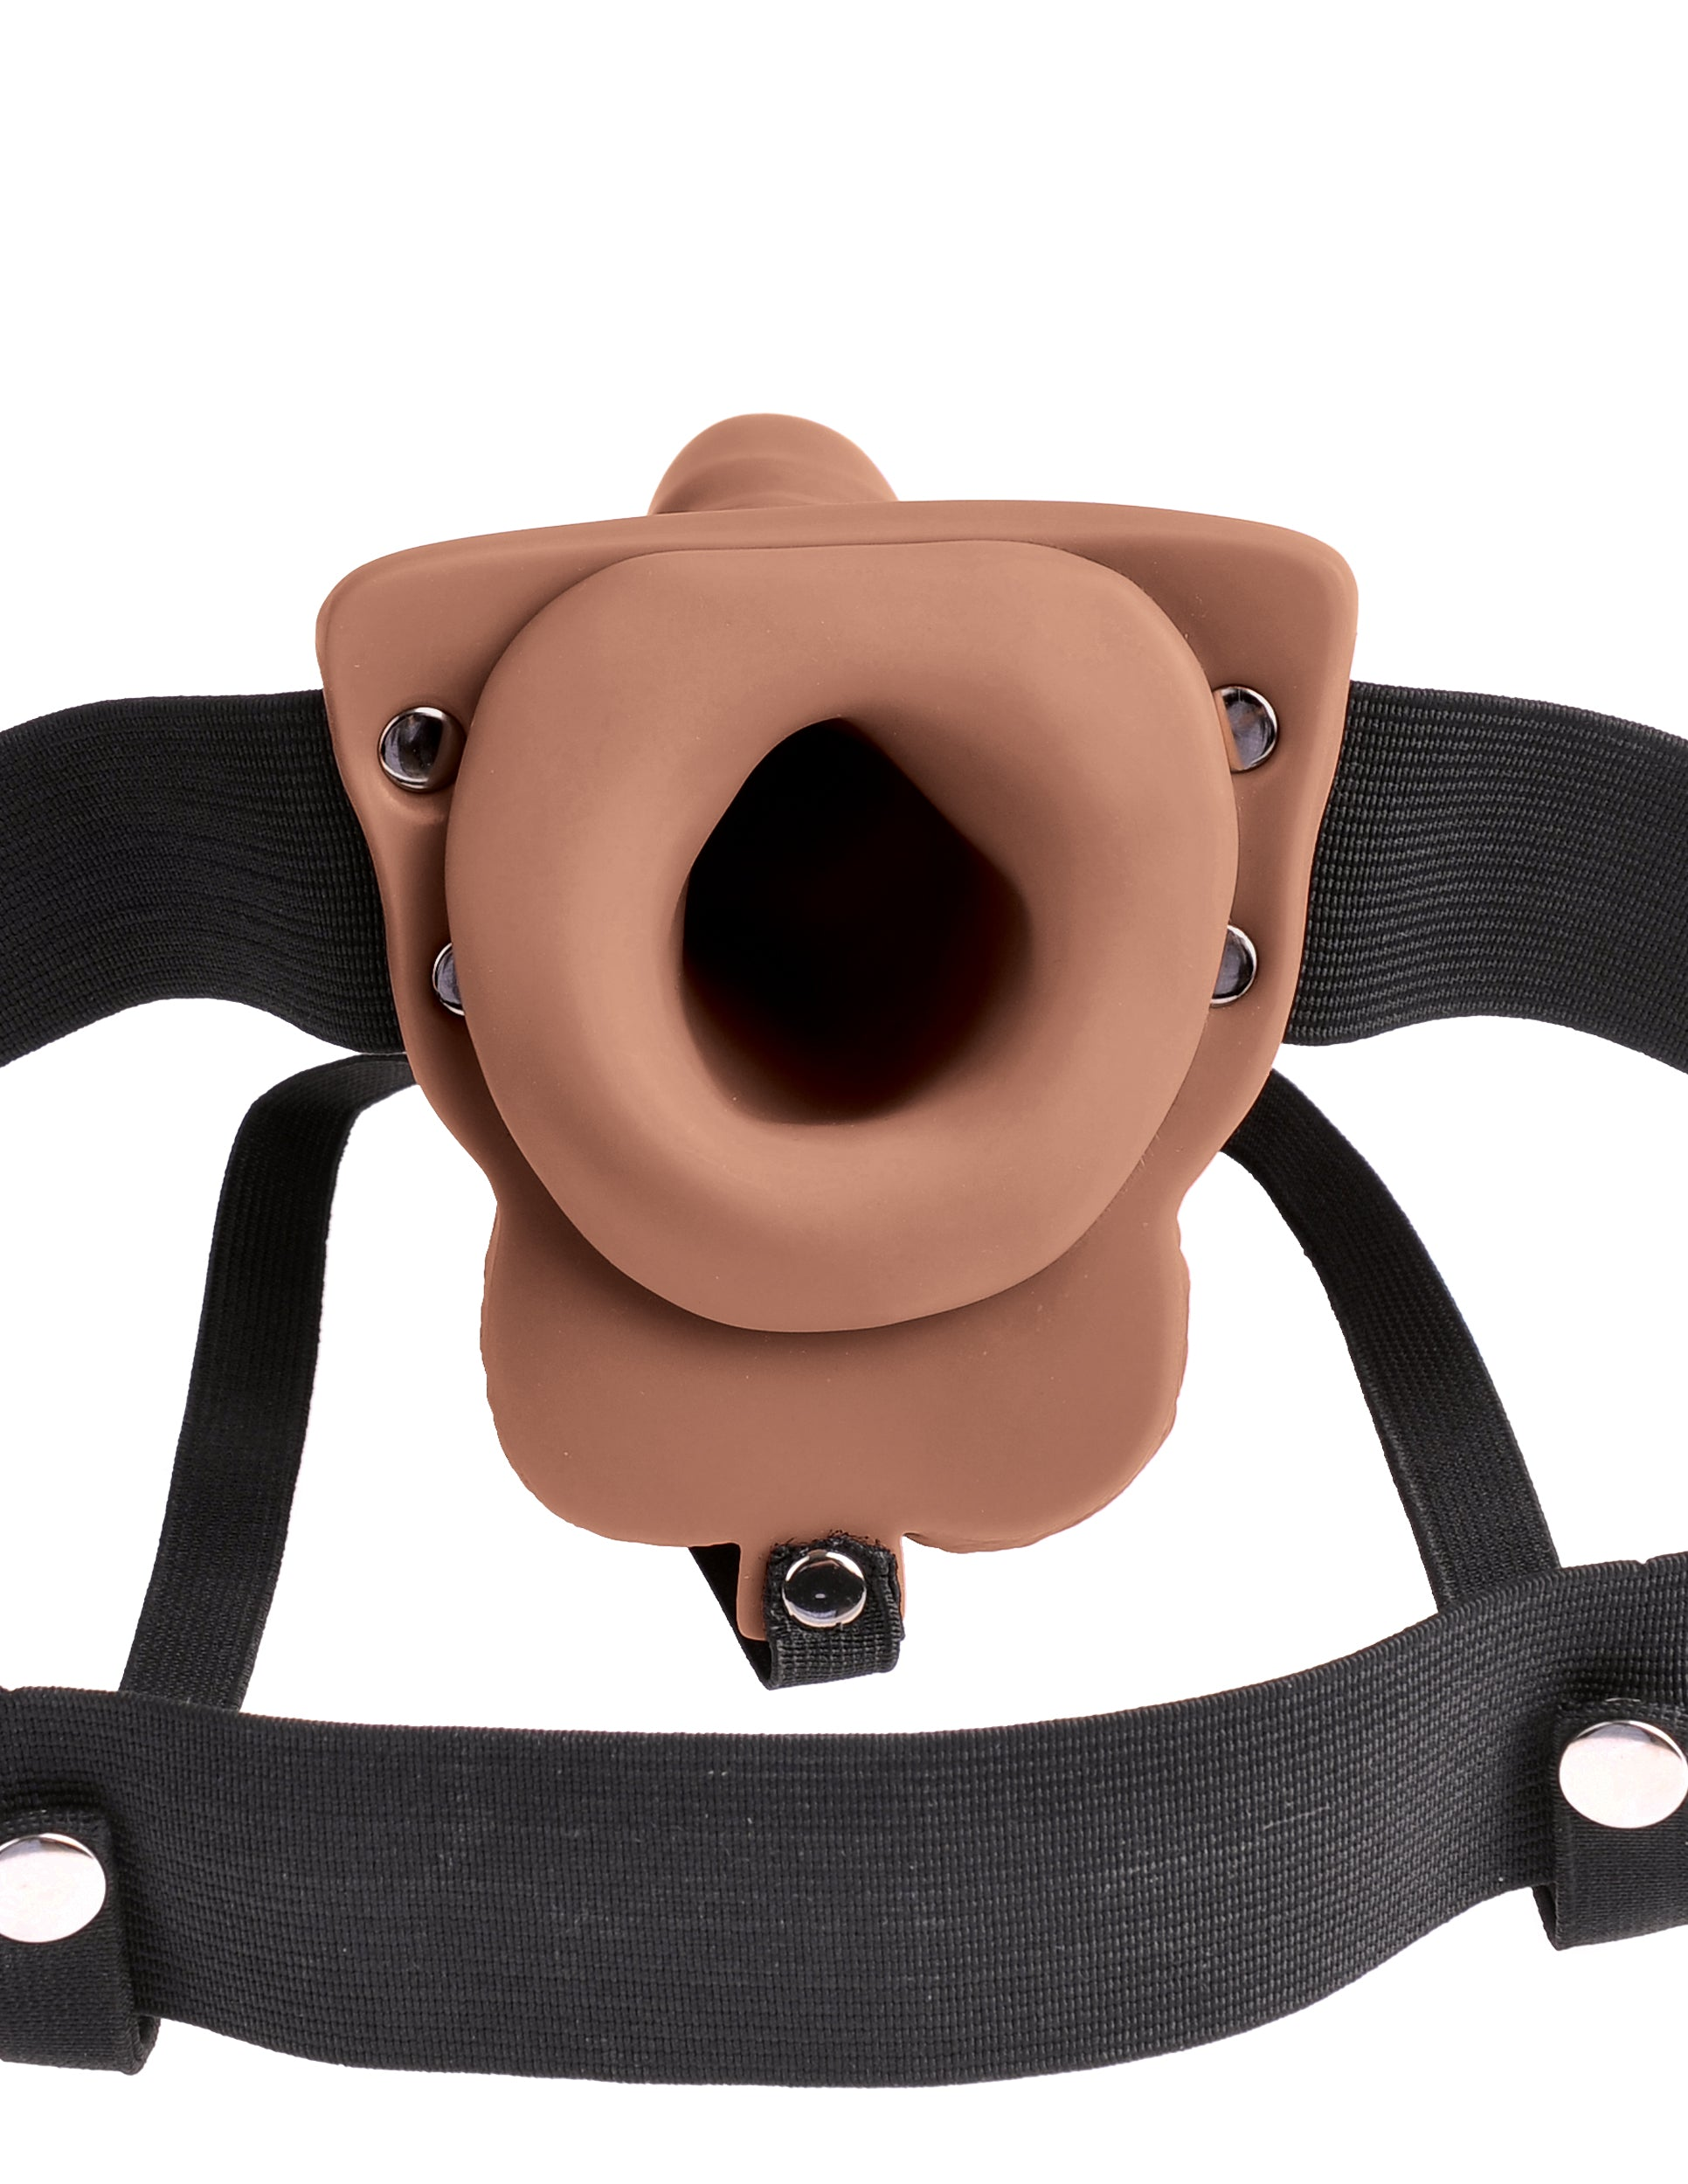 Fetish Fantasy Series Vibrating 6 Inch Hollow Rechargeable Strap-On with Balls - Caramel view of the entrance